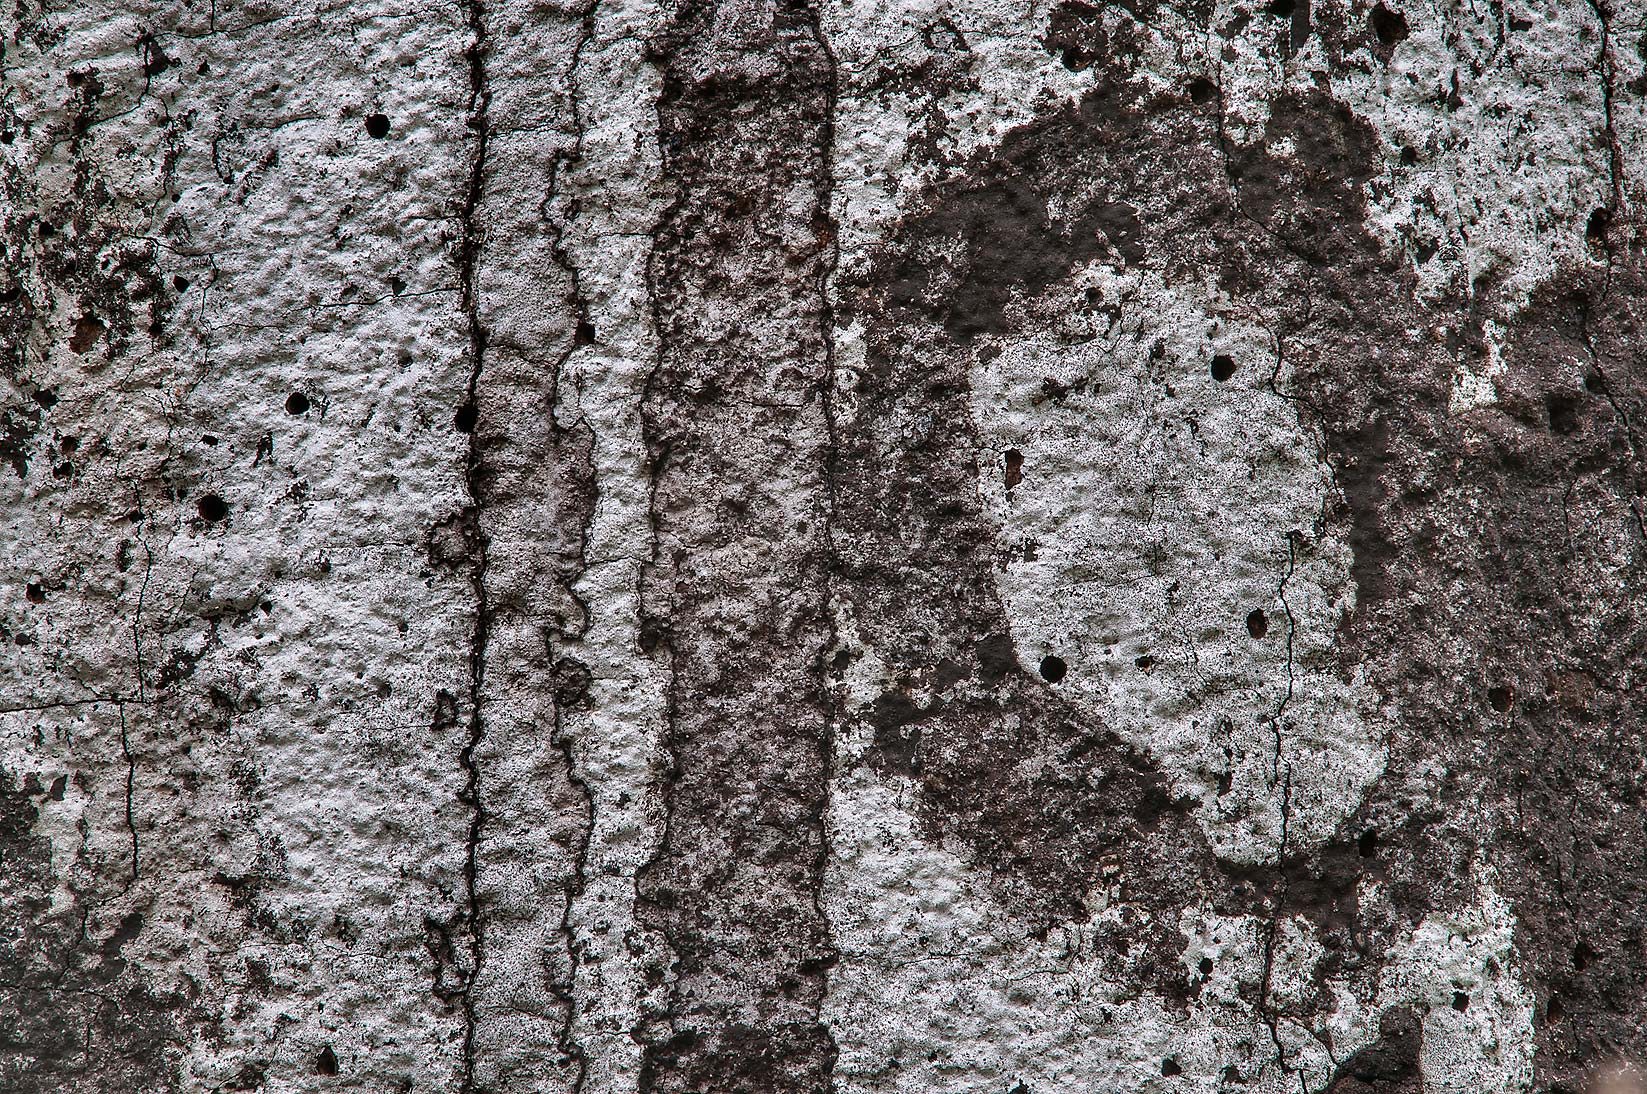 Texture of bark of dry oak tree on Racoon Run...Creek Park. College Station, Texas